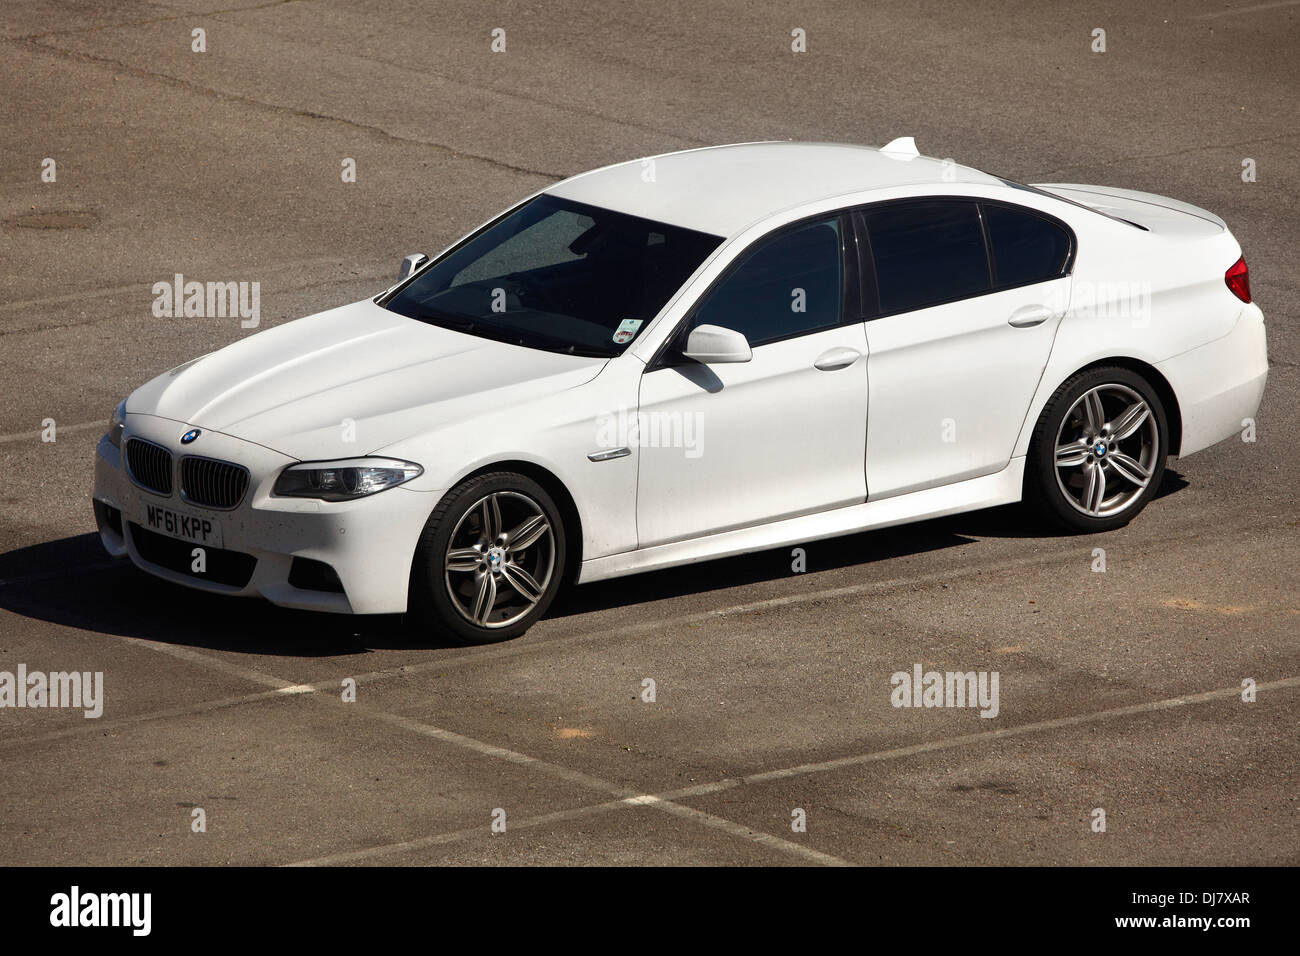 White Bmw 5 Series Saloon F10 Stock Photo 62869263 Alamy